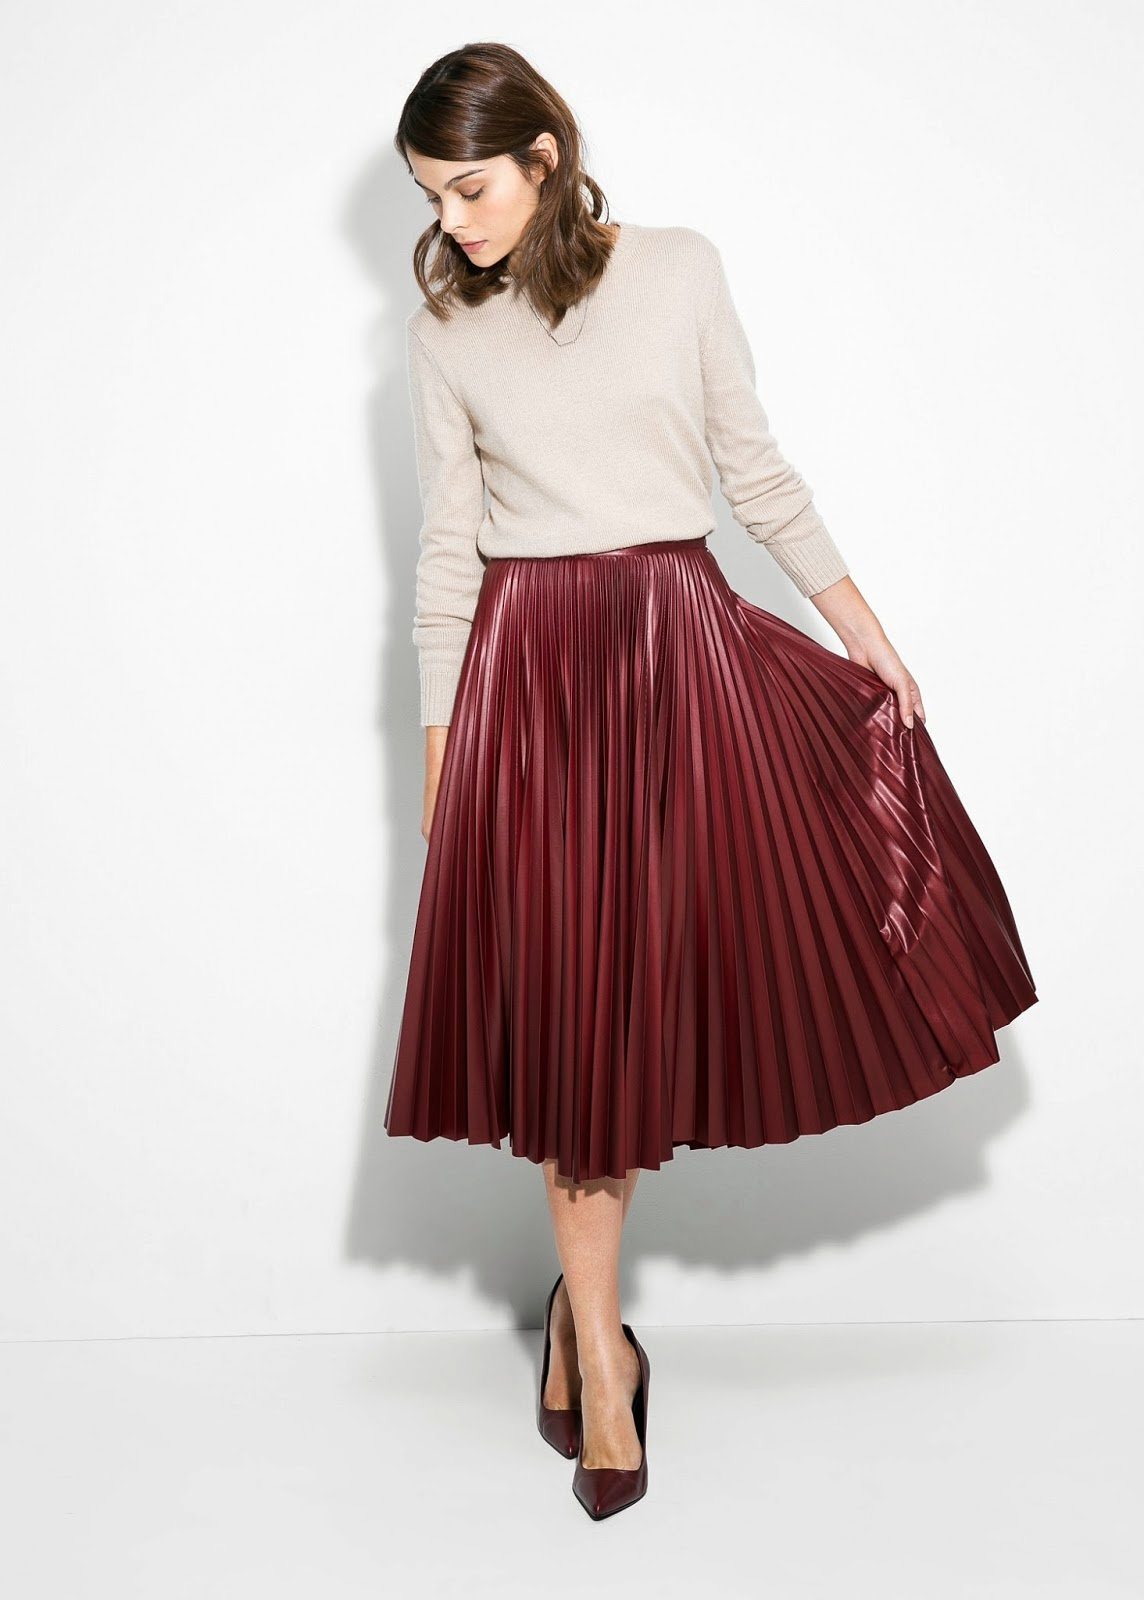 Mode-sty: Pleated Skirt Finds